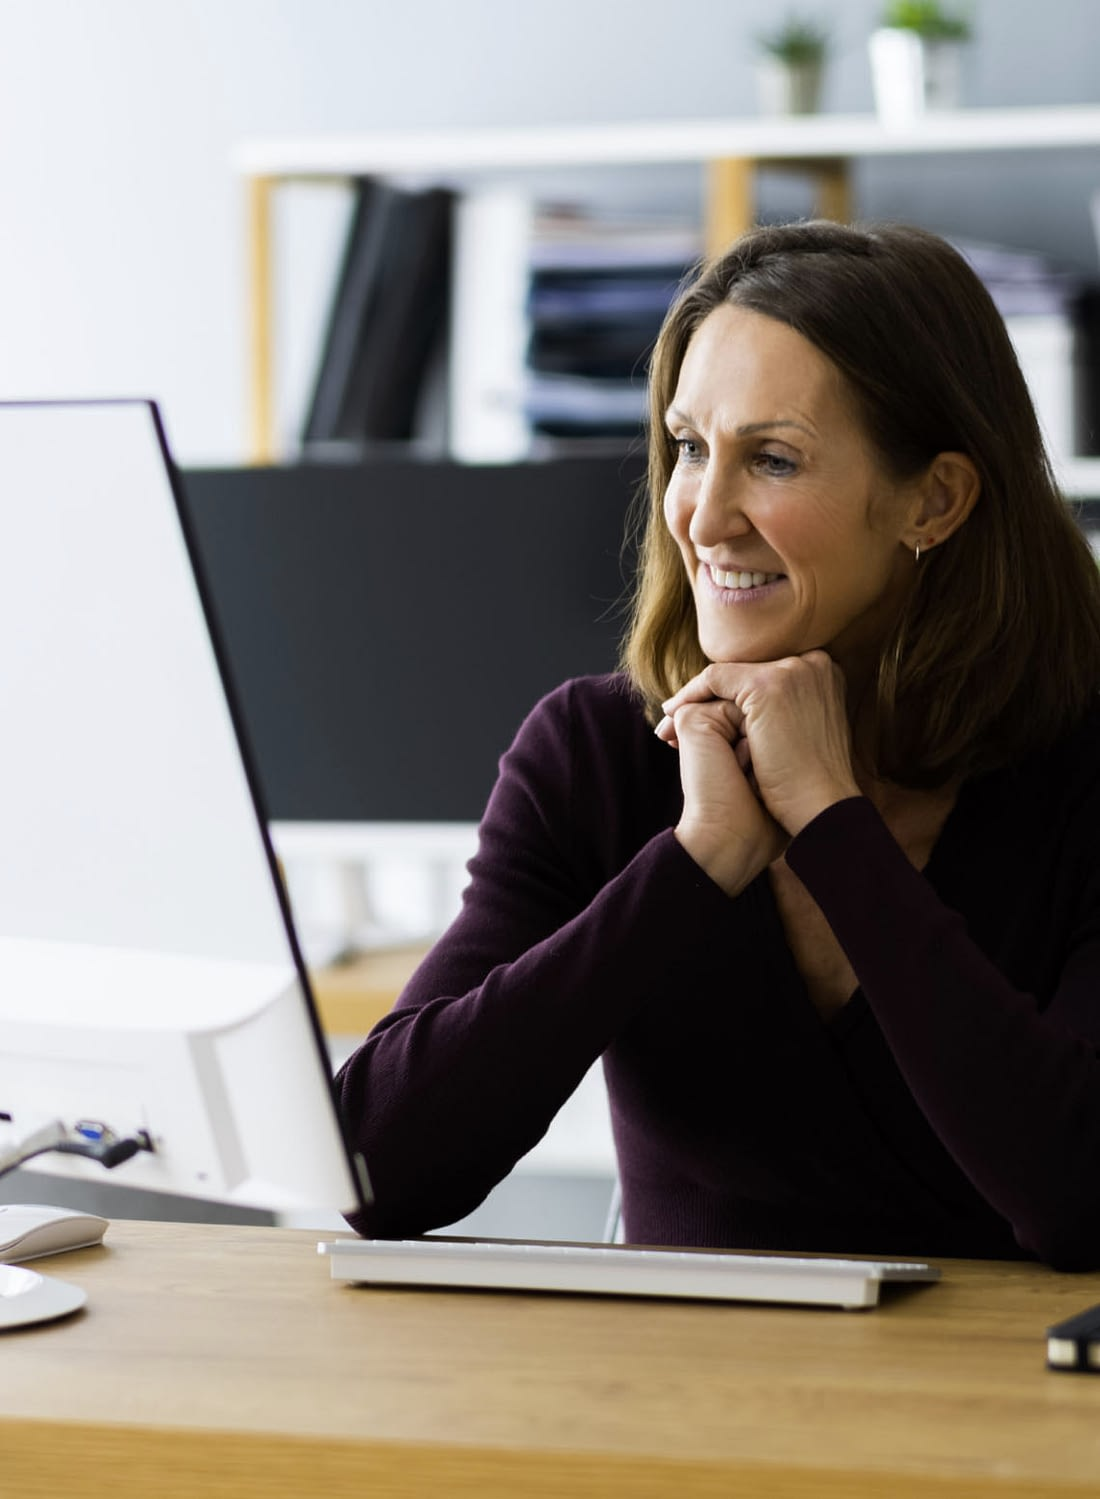 A photograph of a woman smiling at a computer screen.